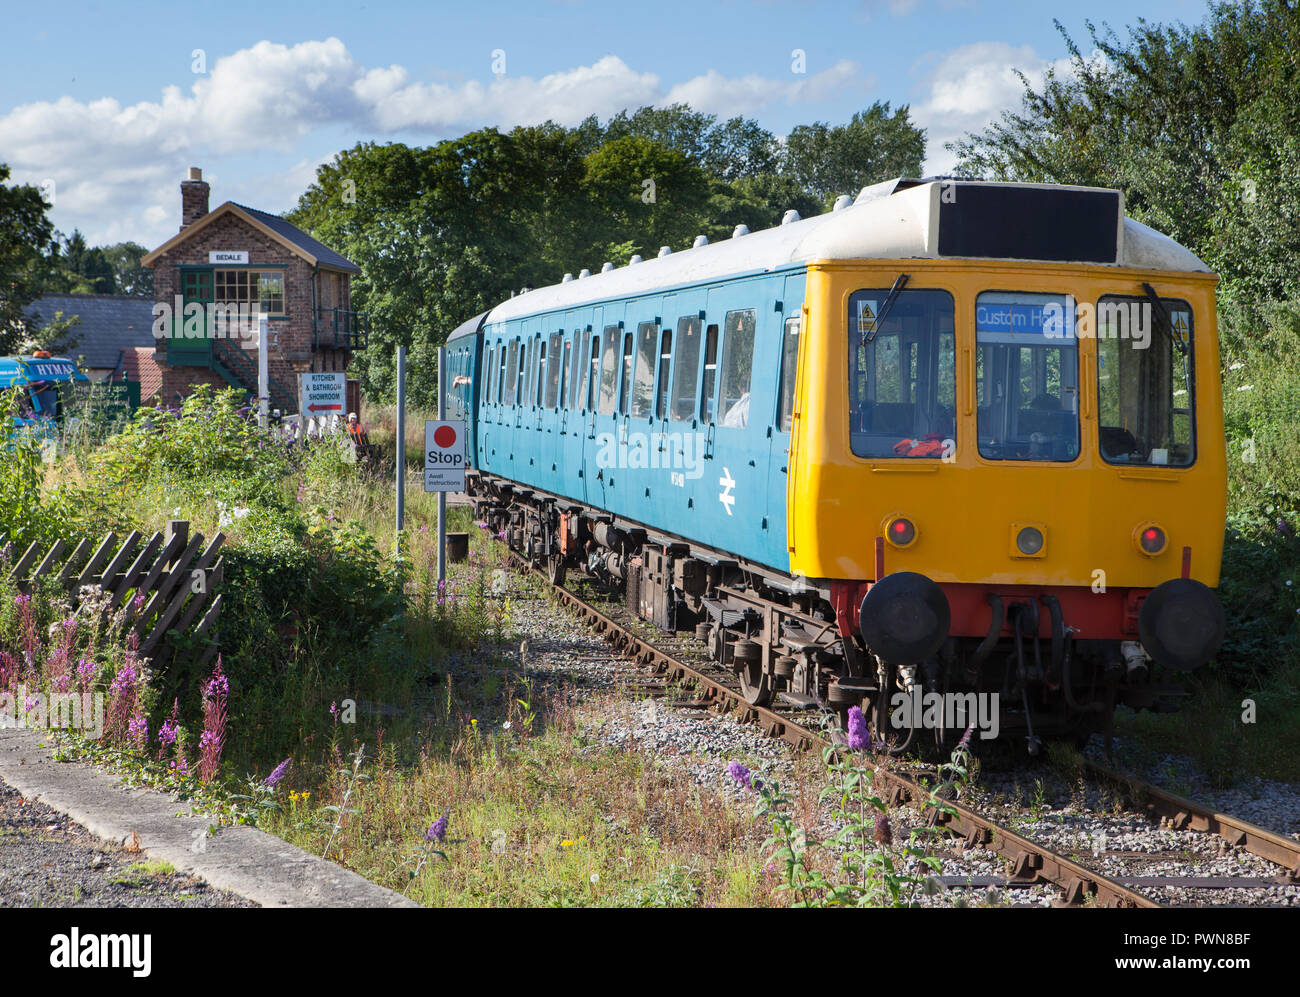 A diesel multiple unit passenger train leaving Wensleydale Railway's Bedale station passing the level crossing and signal box - Stock Image